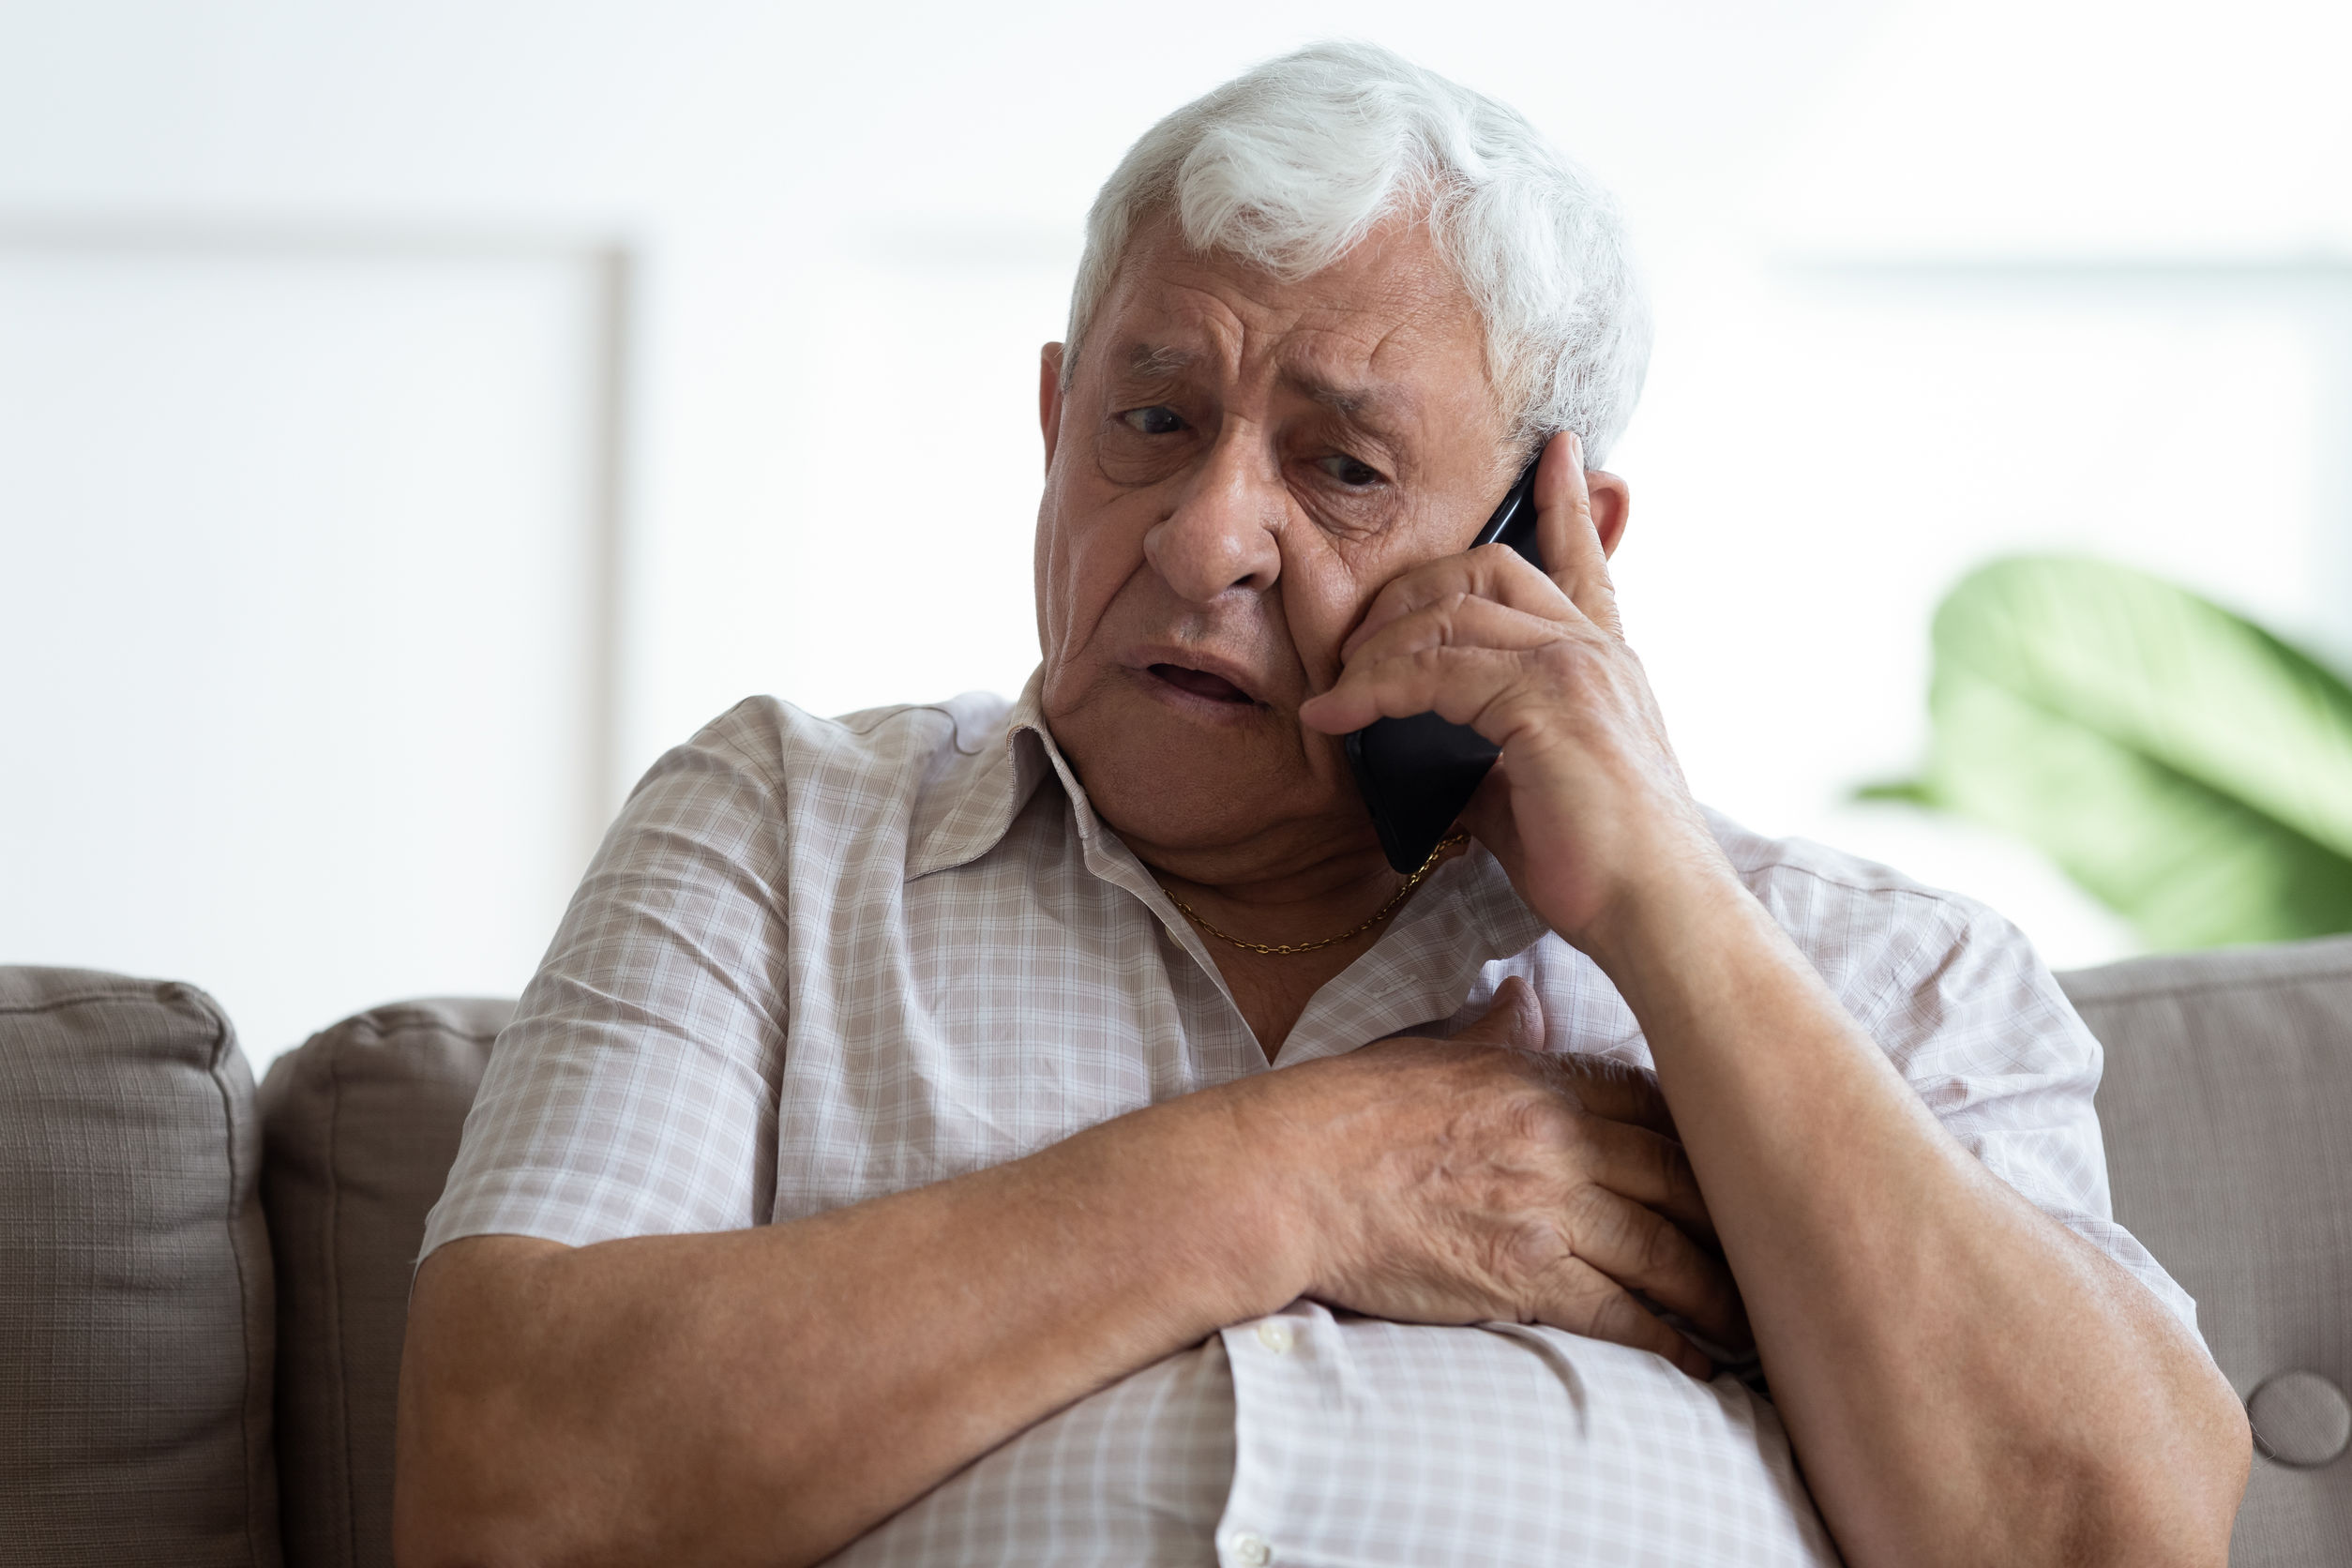 Supporting The Elderly With Loneliness And Isolation